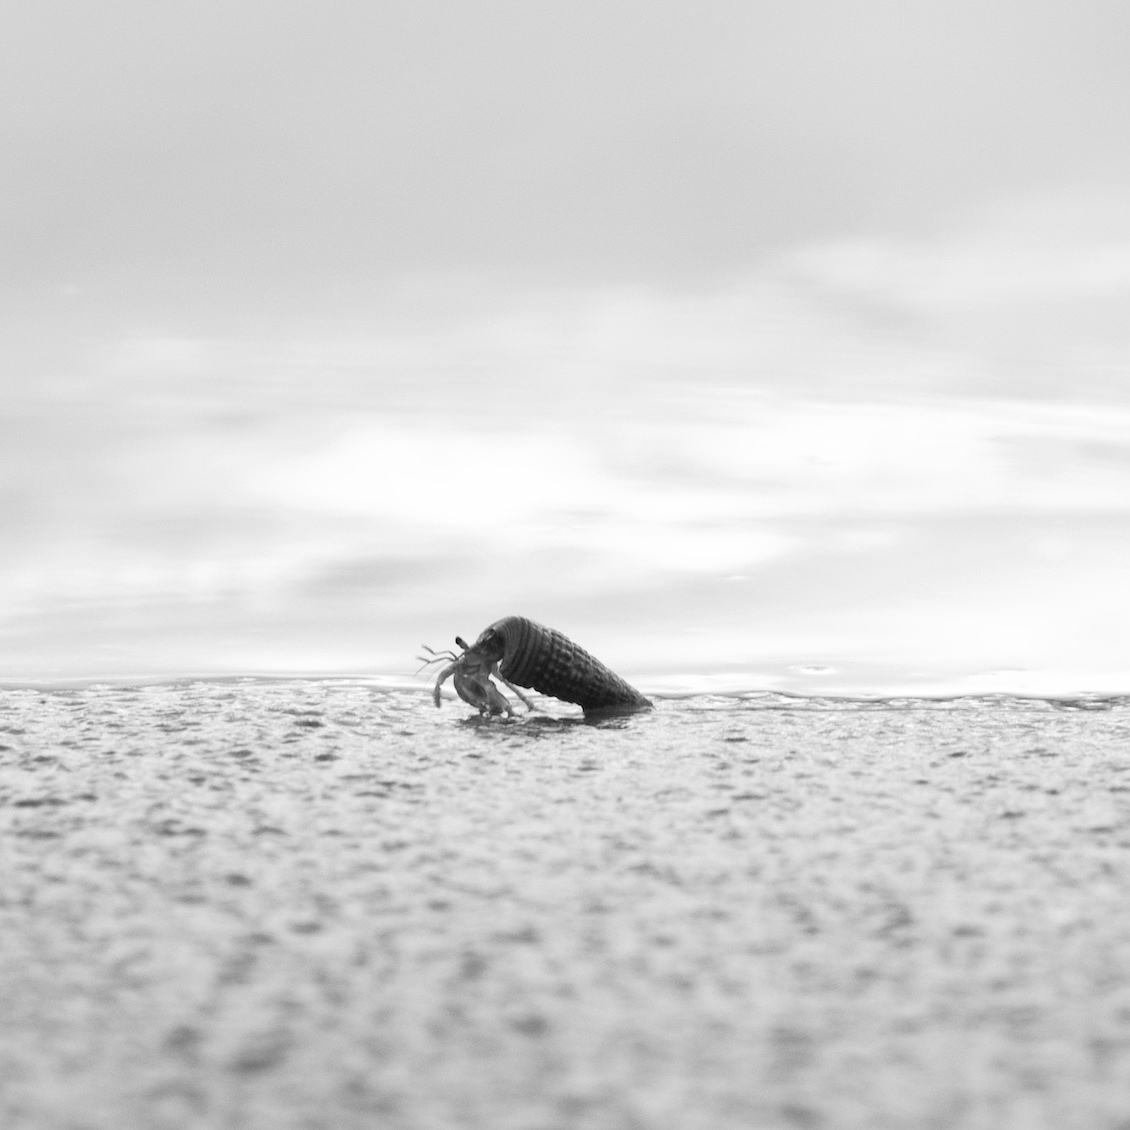 A hermit crab walking along the shore.